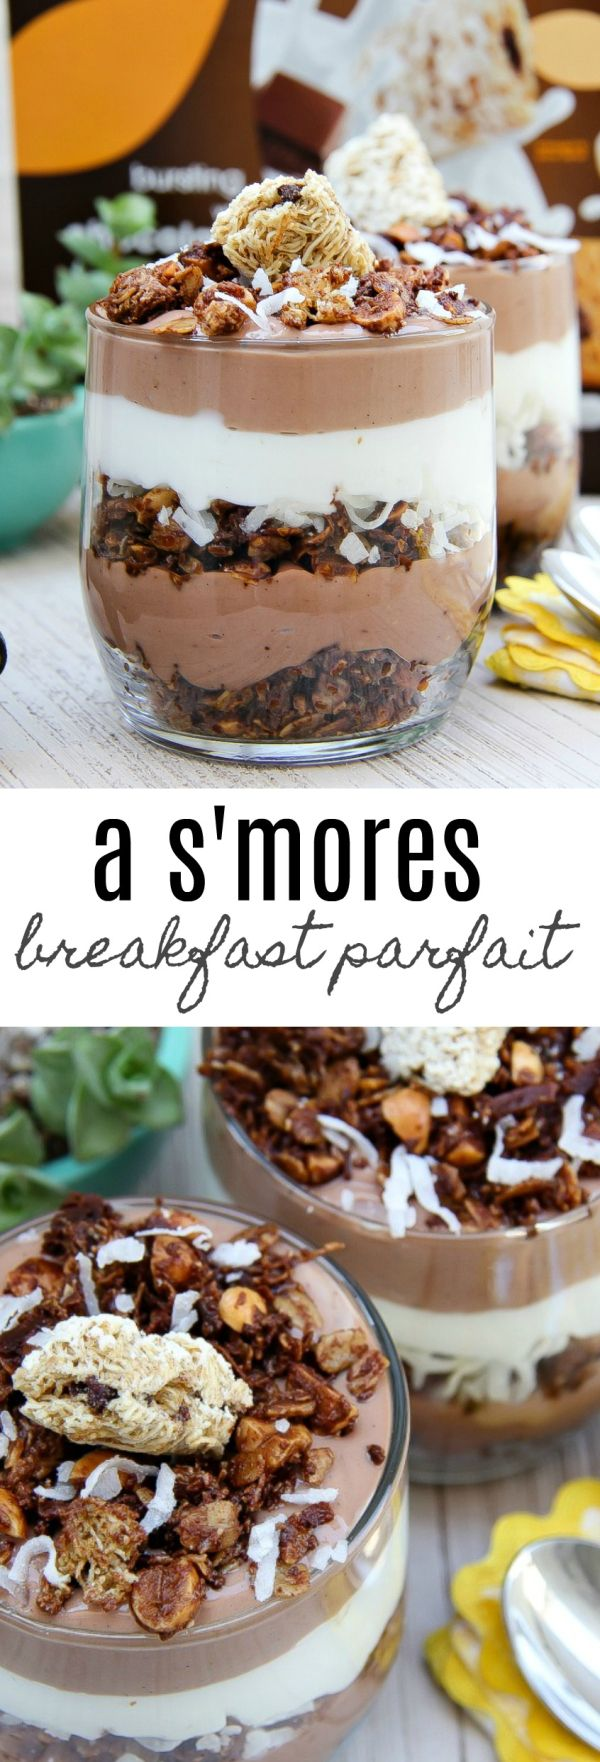 Who says you can't have dessert for breakfast. These delicious s'mores breakfast parfaits are made with Nutella, shredded wheat cereal, yogurt, and coconut.